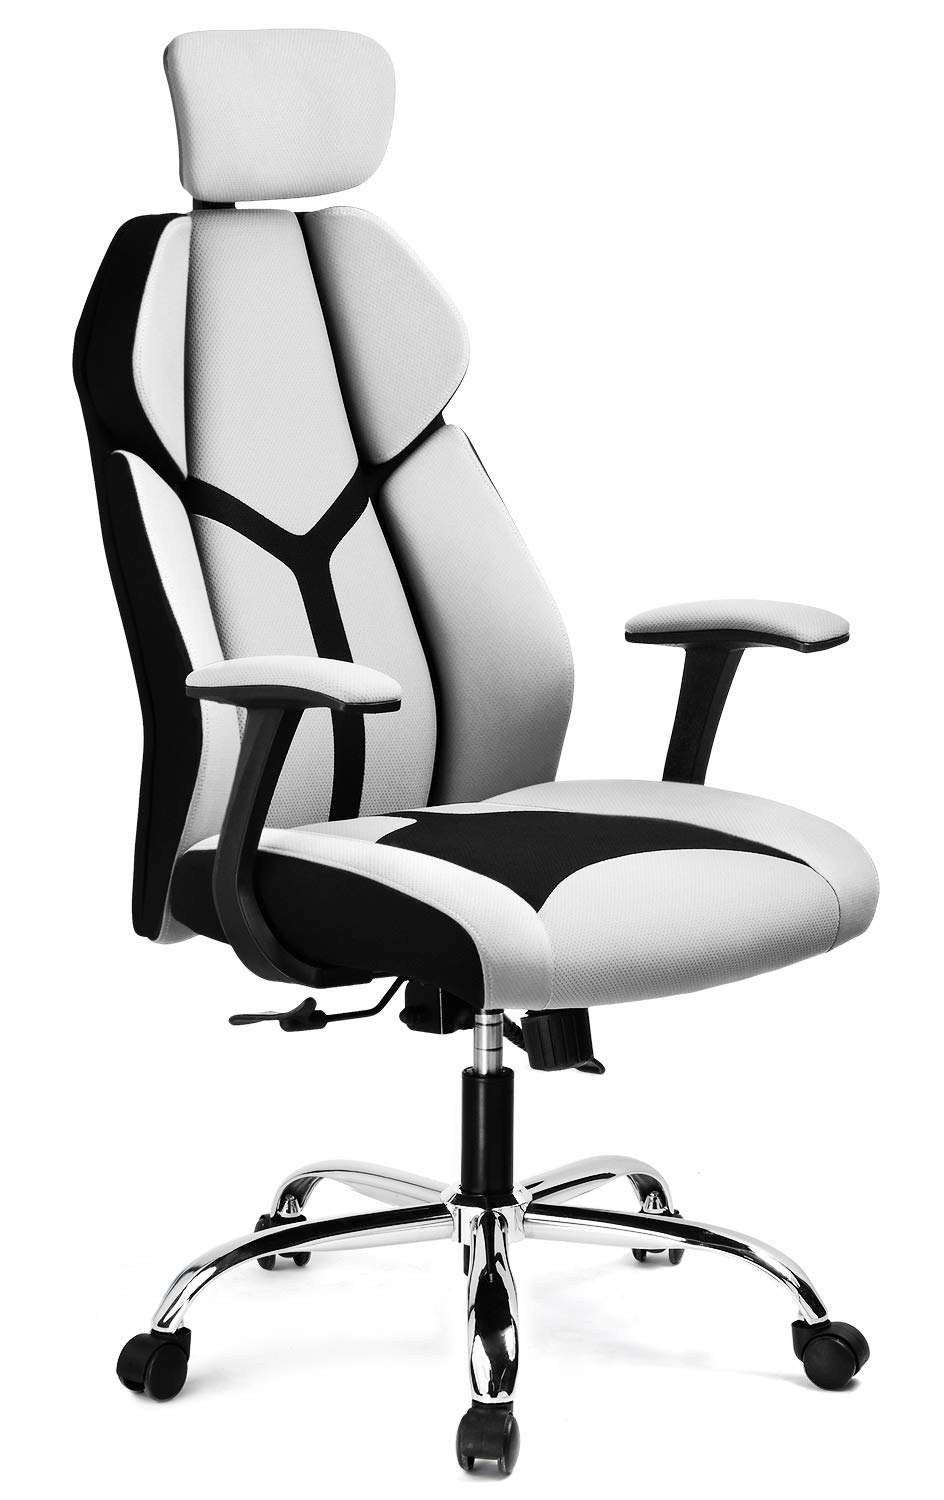 GTRACING Gaming Chair Soft Breathable Fabric Office Gaming Executive Chair Lumbar Support w Ergonomic Curved Deign Headrest Reclining Adjustable Computer Desk Home Chair Gray